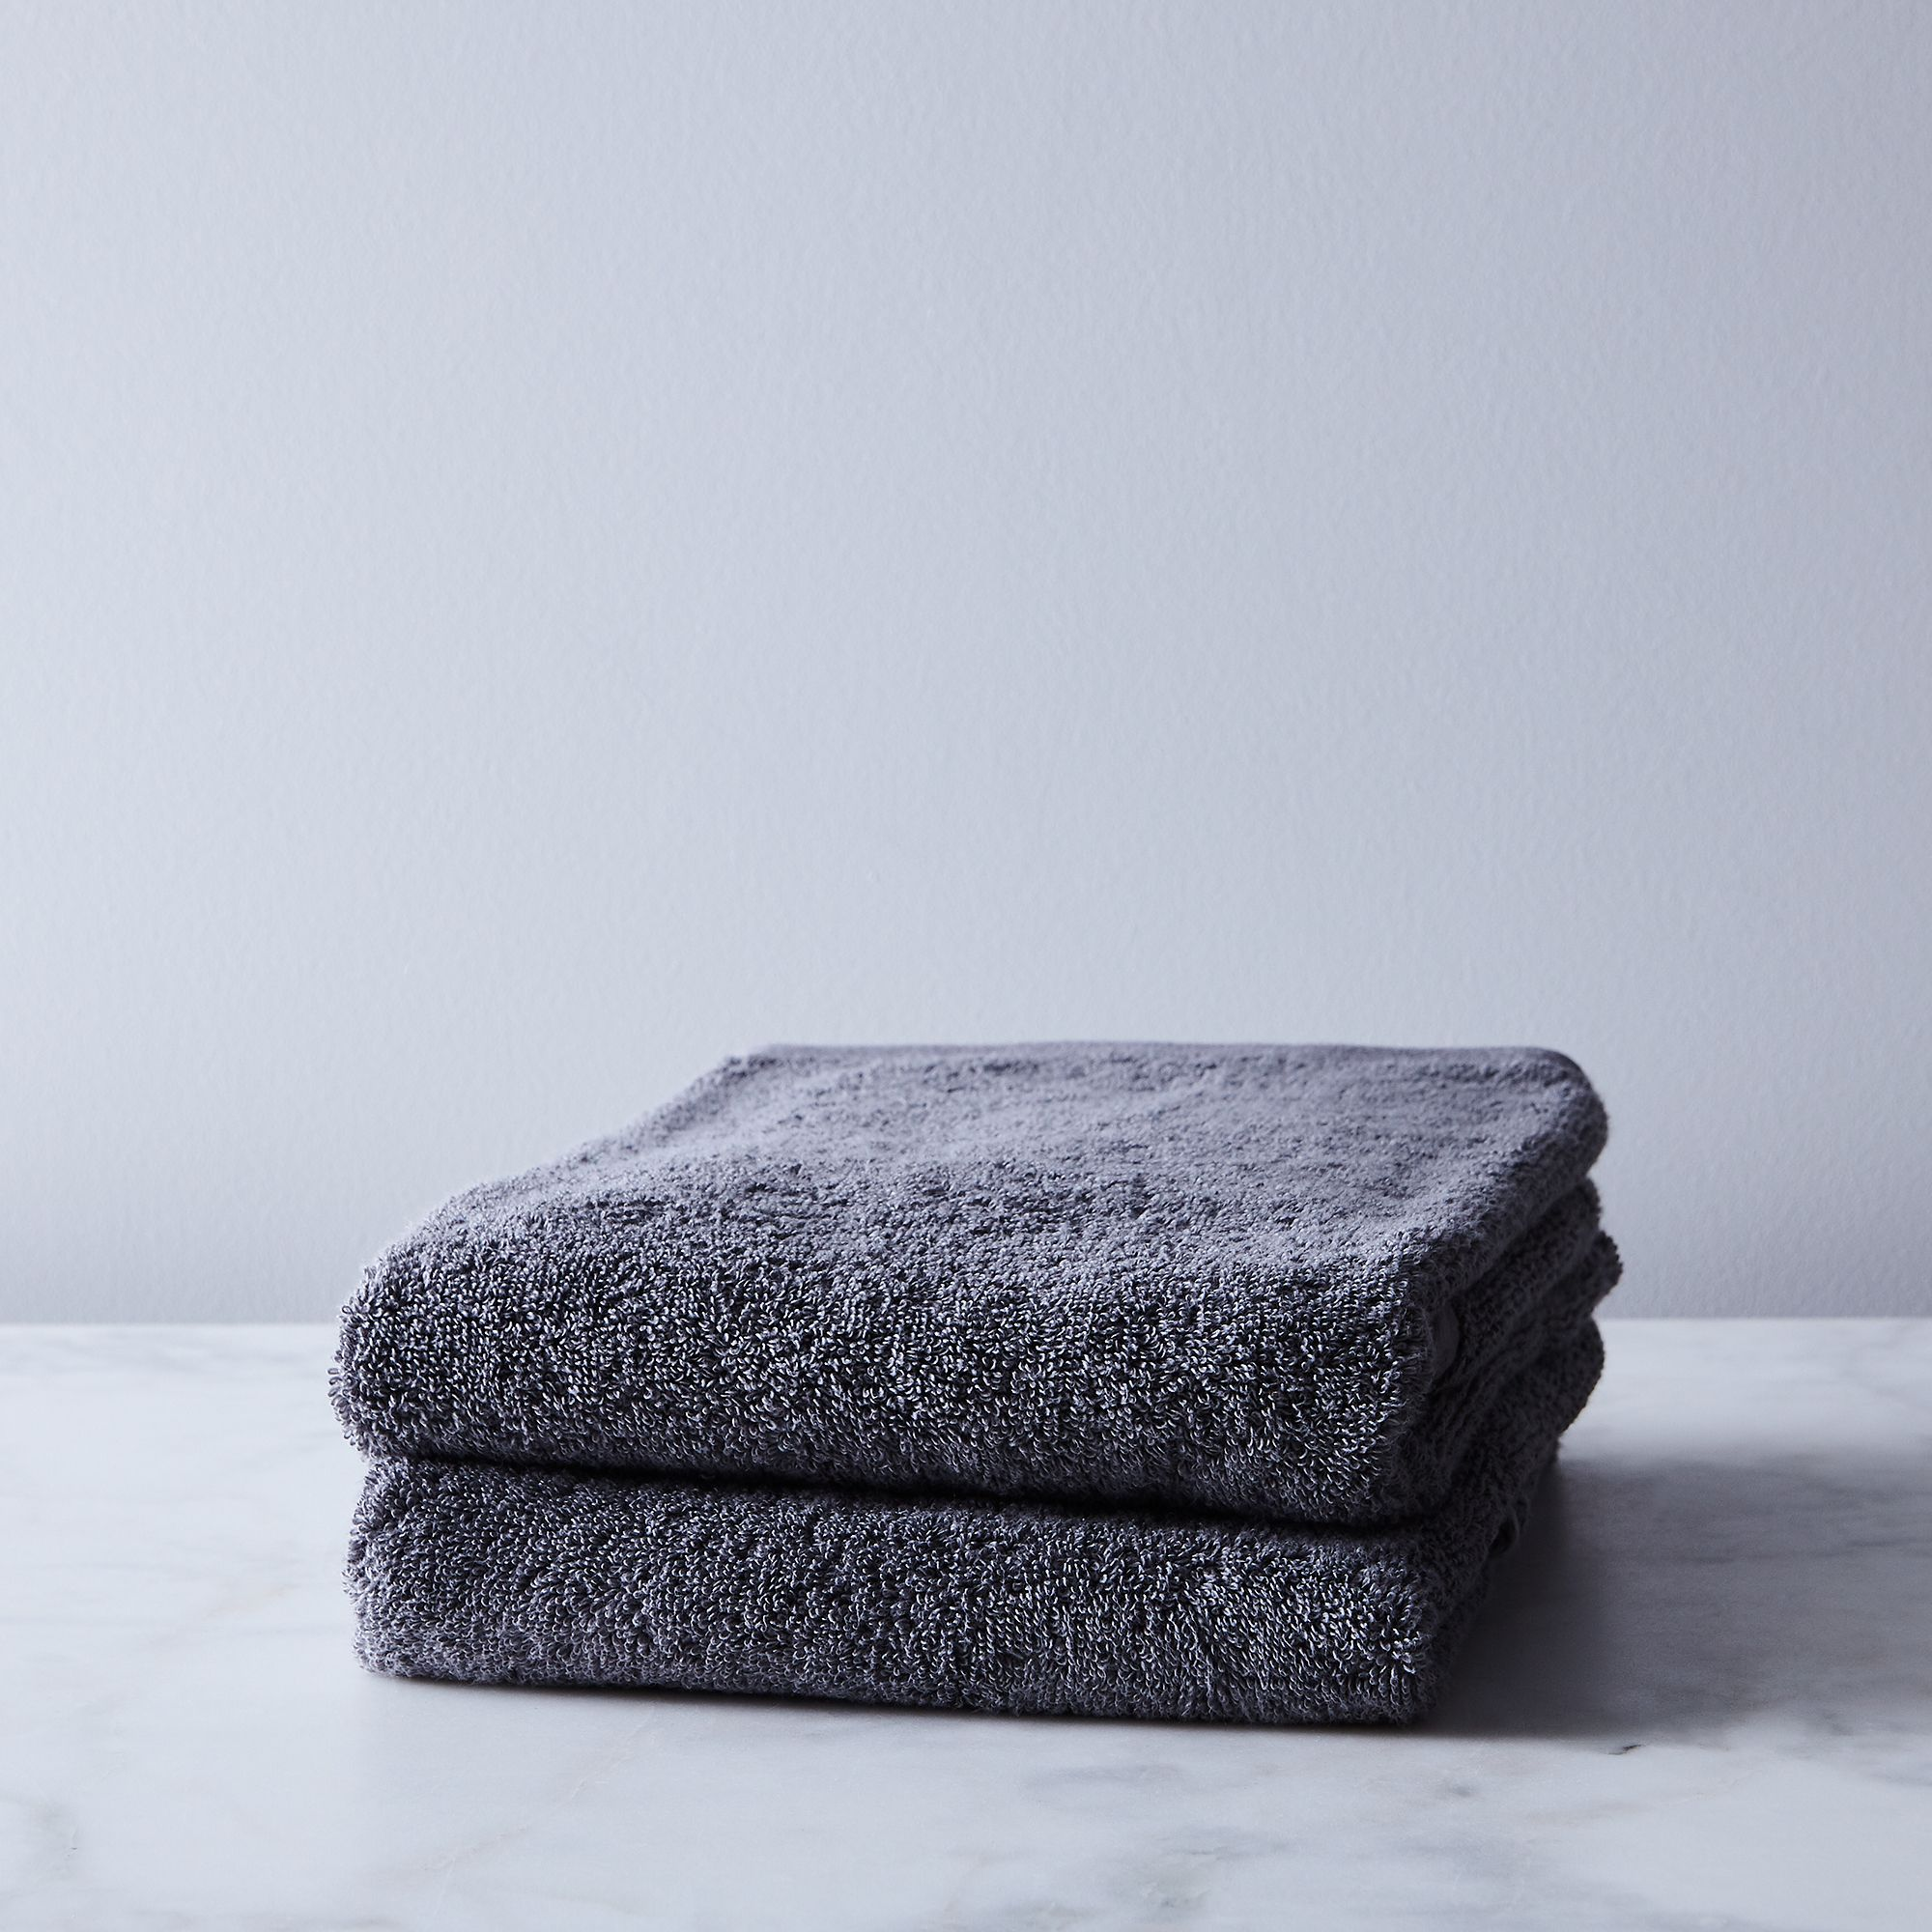 B58323fd 2efc 4111 99a8 972286b23bf3  2017 0926 snowe home soft cotton towels hand towel set of 2 charcoal grey silo rocky luten 008